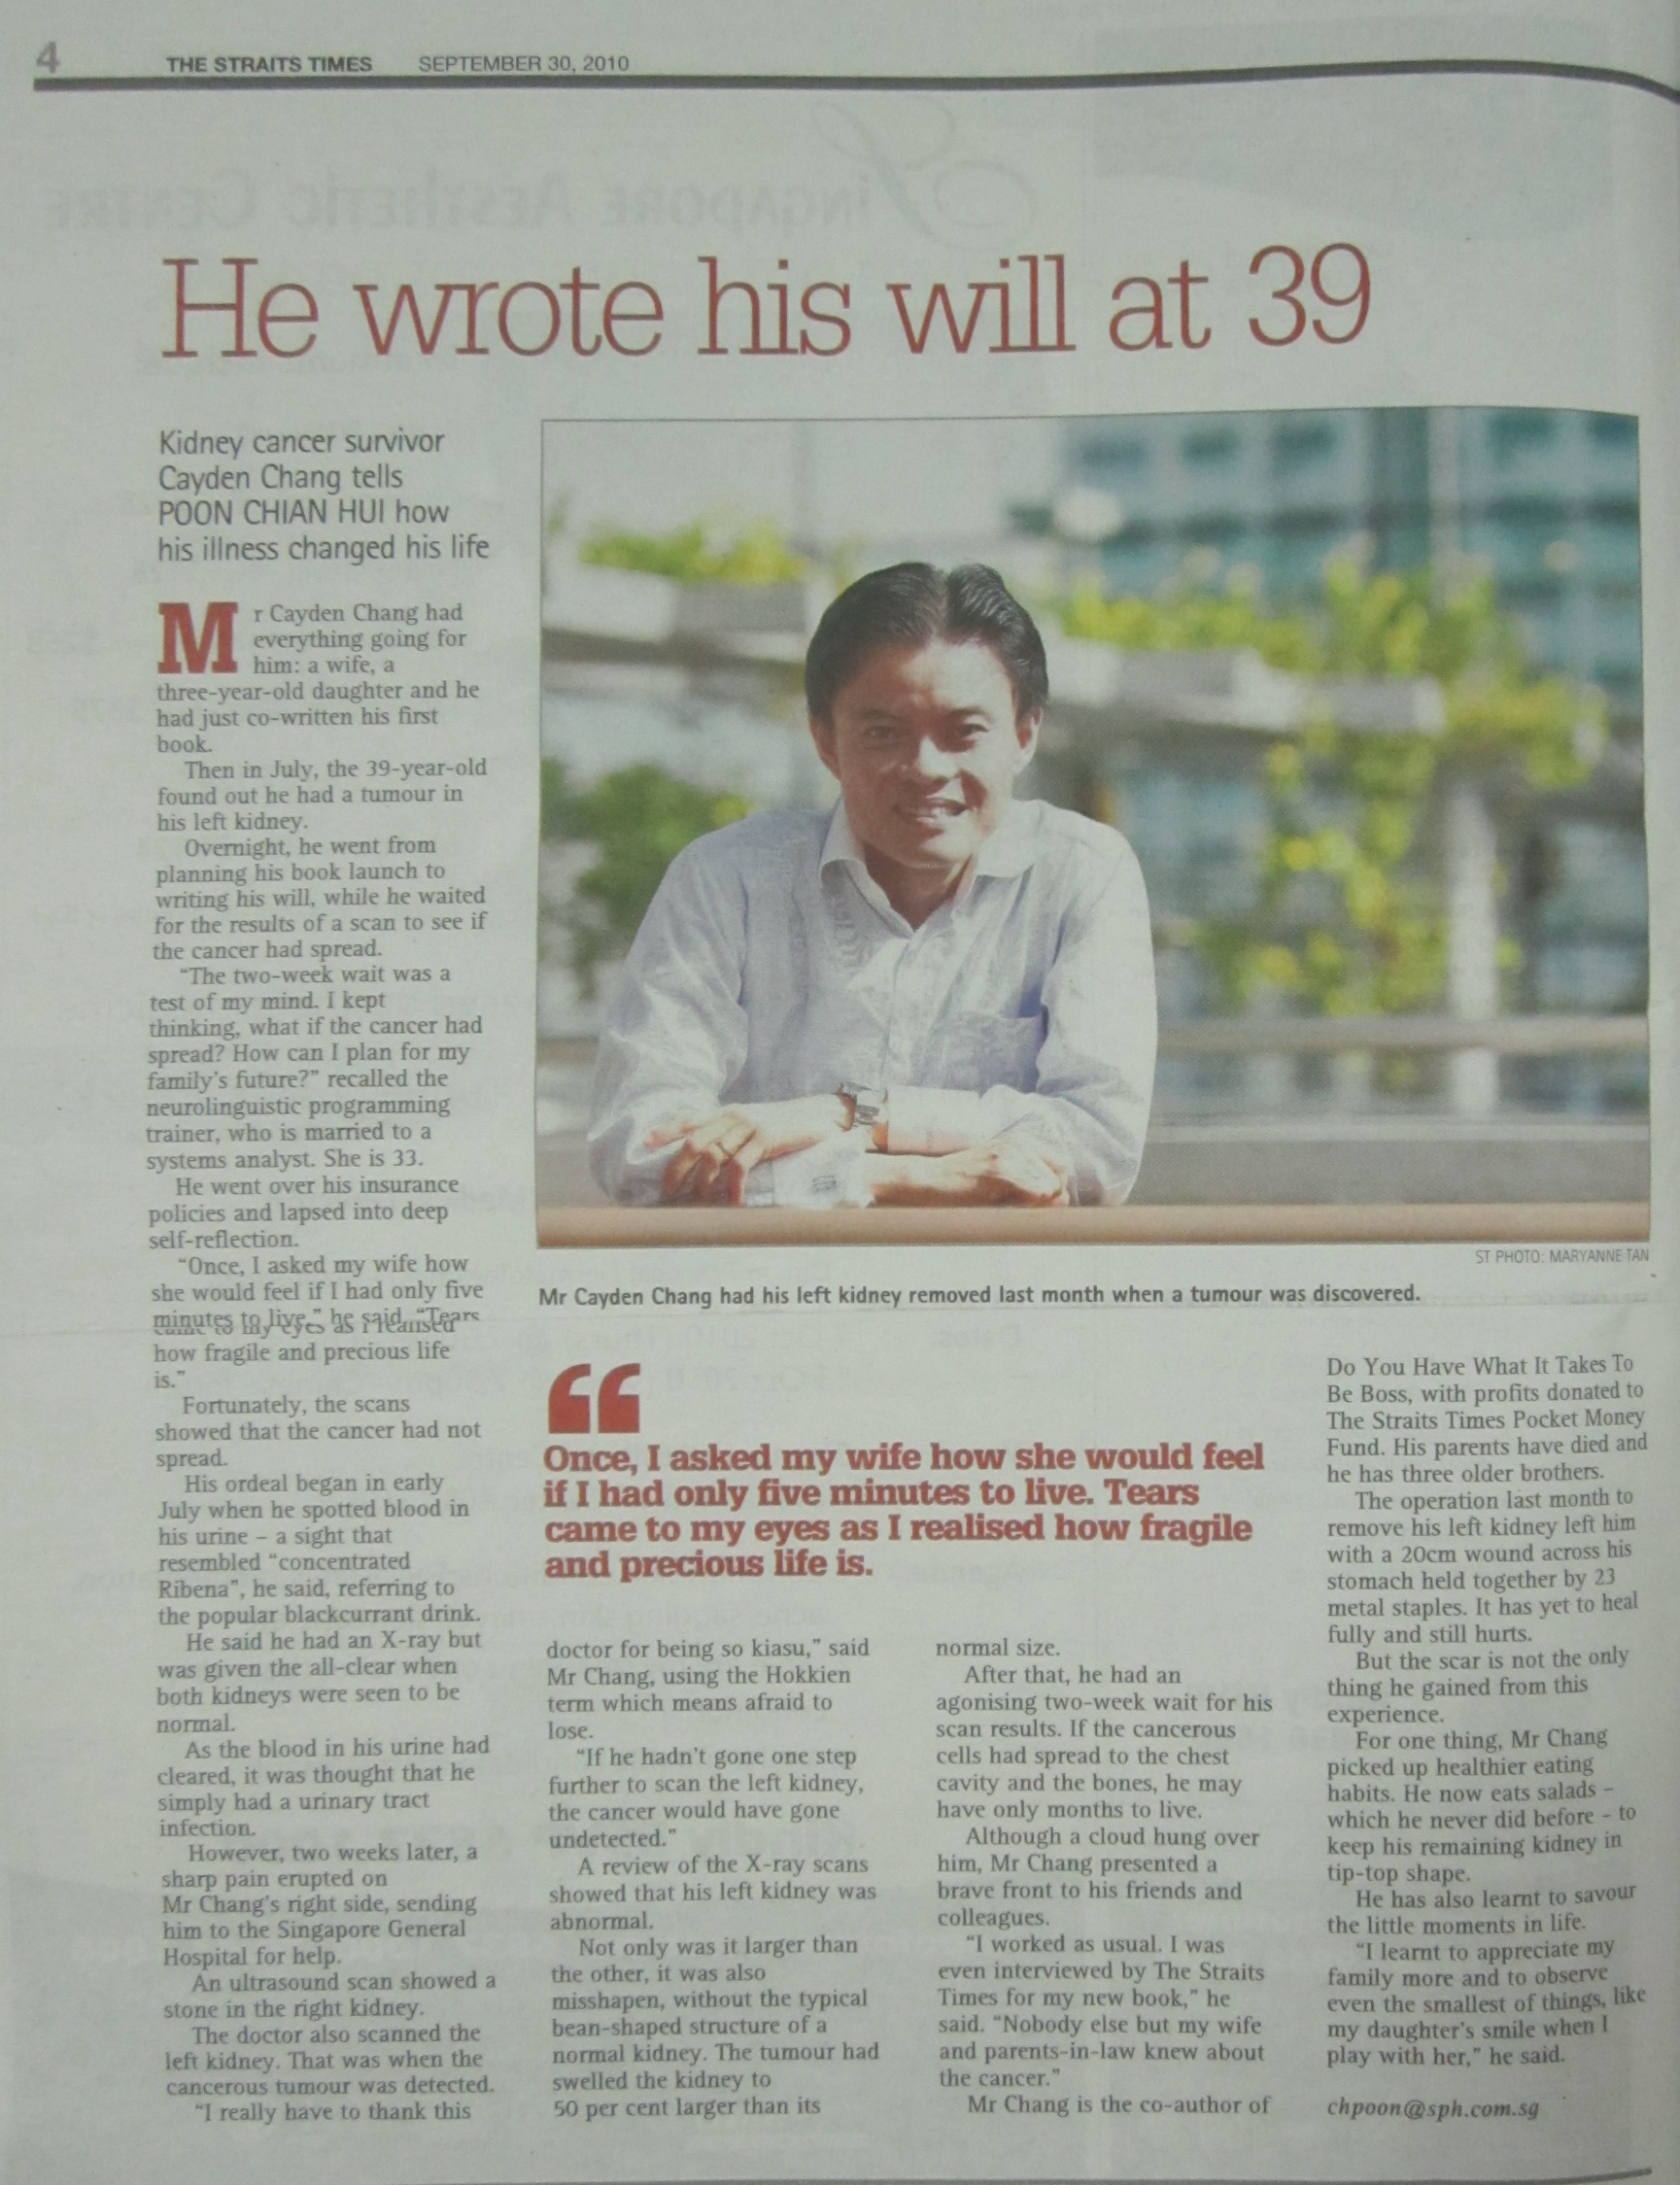 cayden chang Straits Times article